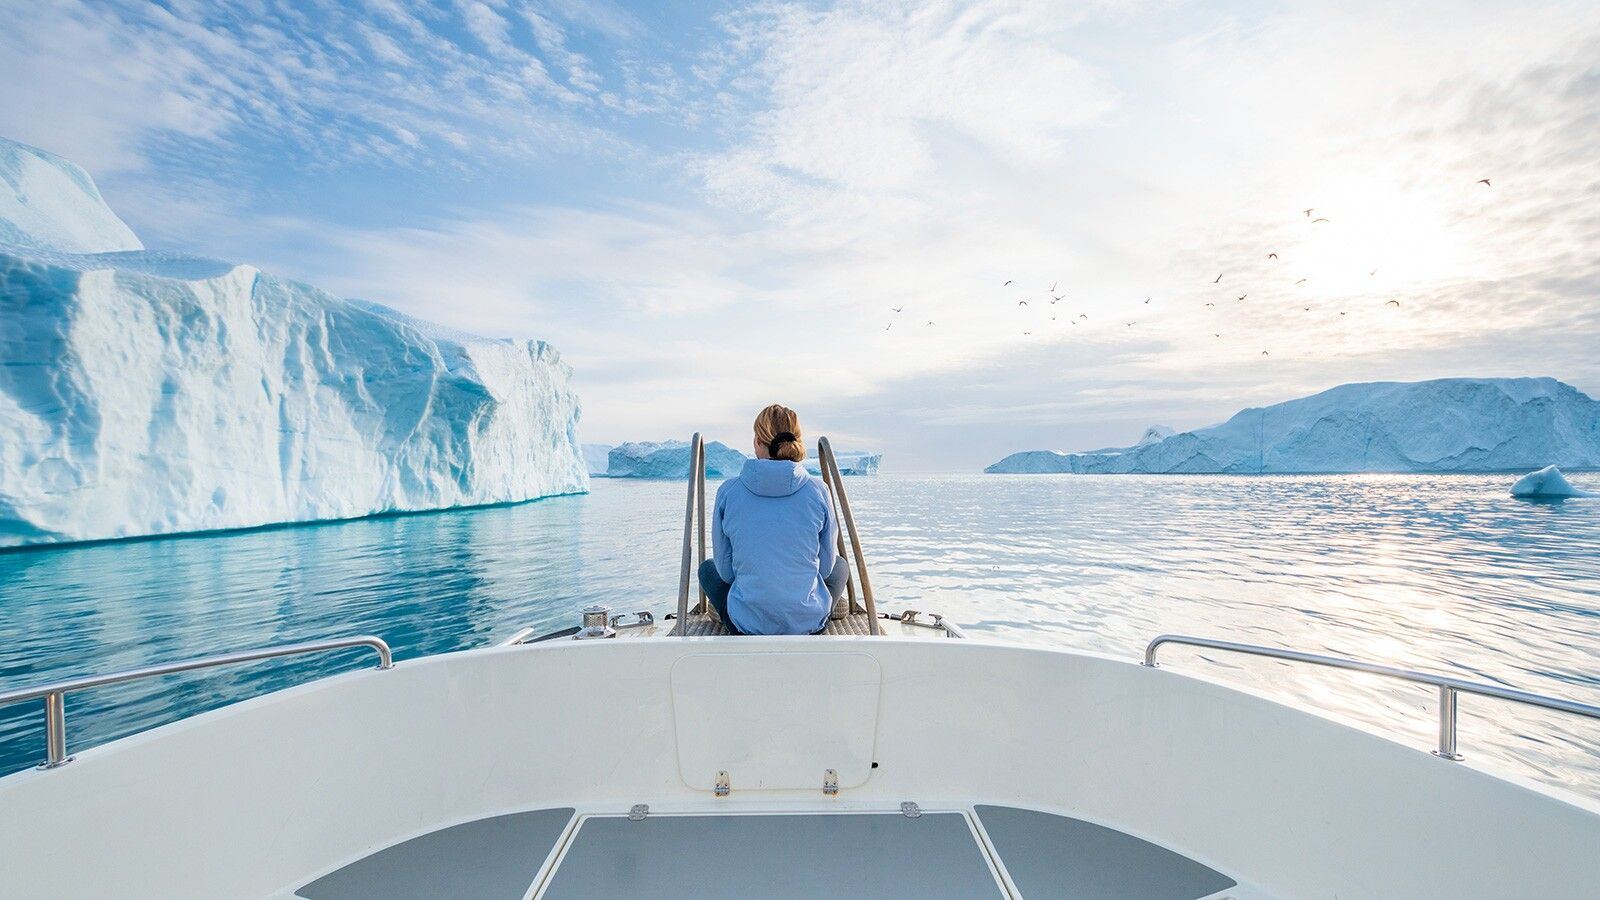 An arcticrealm of ice and rugged peaks, Greenland is one of the last wild corners of ...